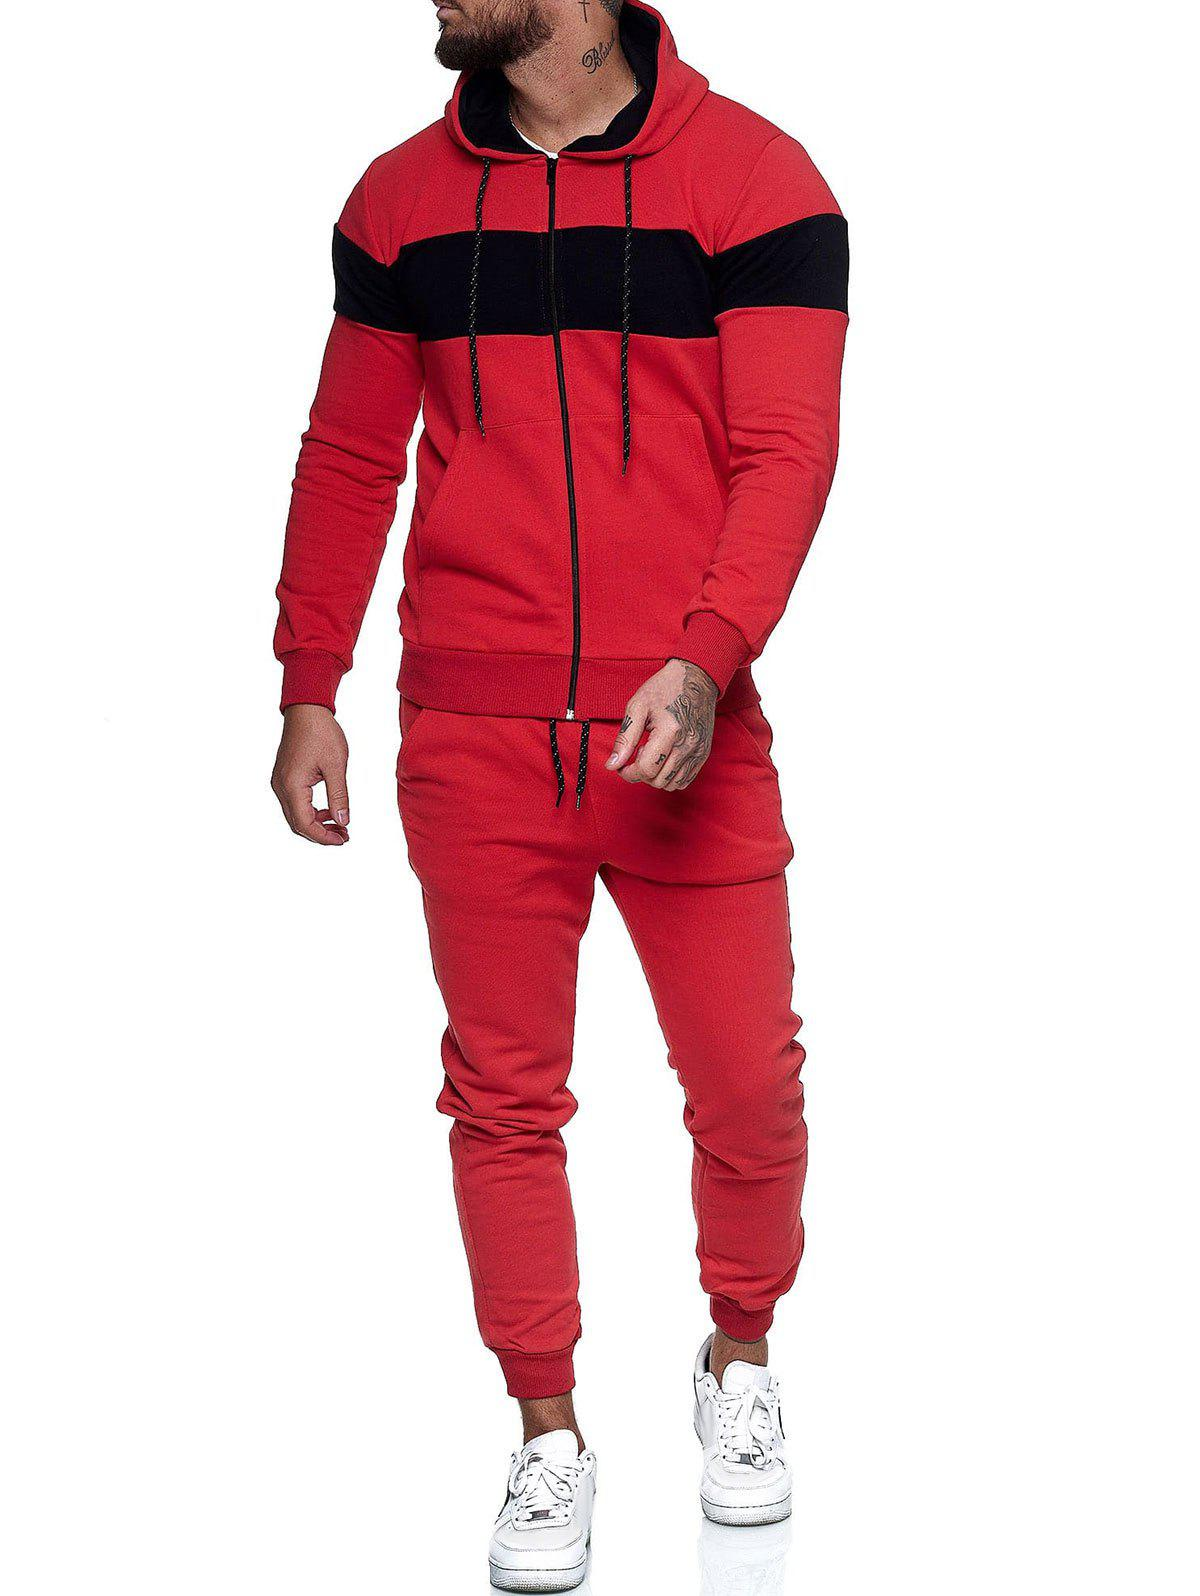 Trendy Contrast Zip Up Hoodie Jacket and Pants Sports Two Piece Set